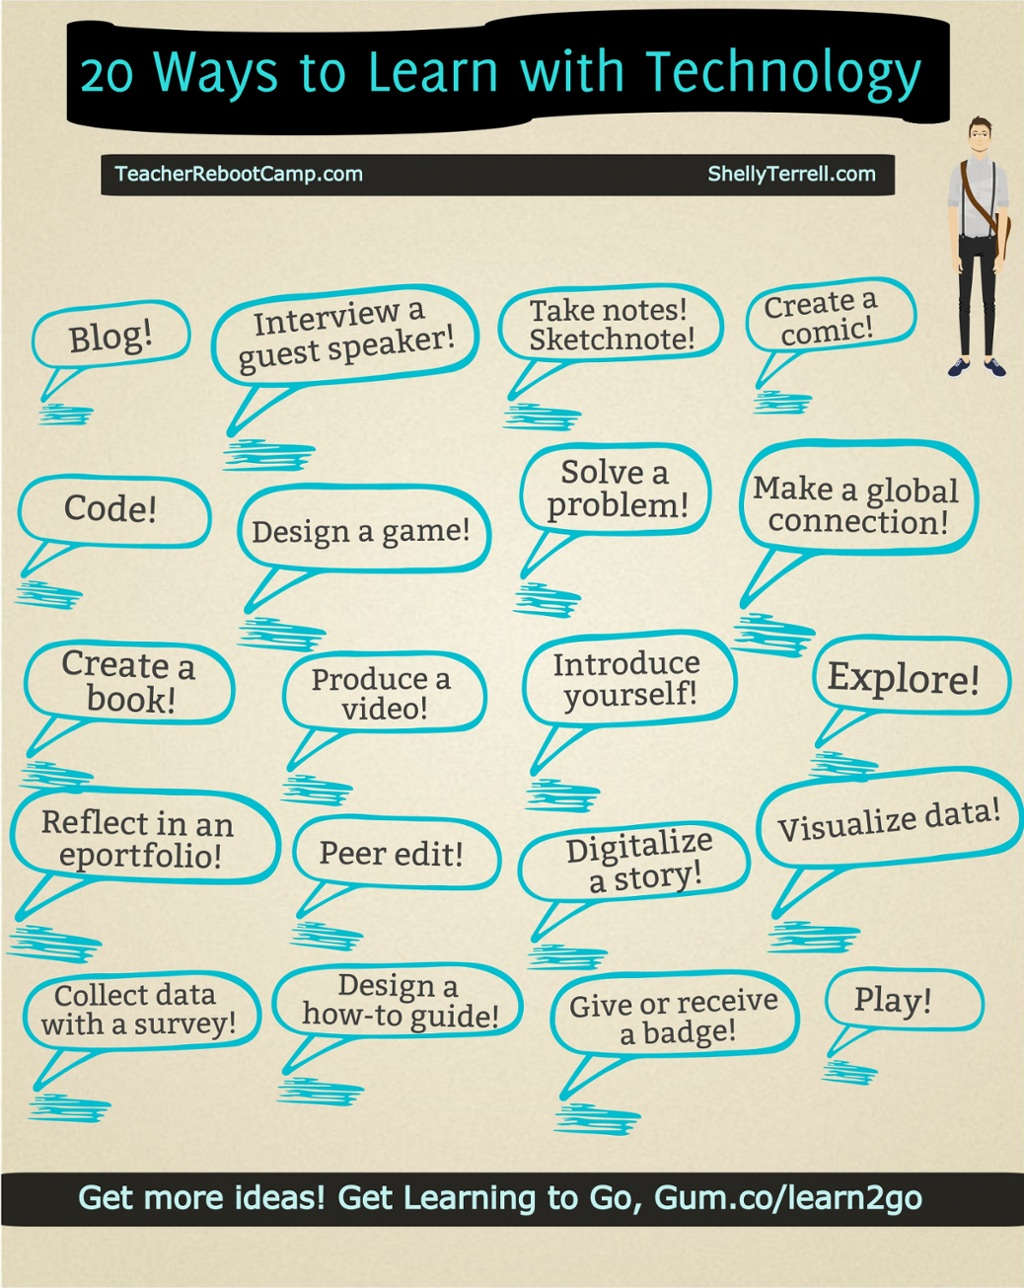 20 Ways to Transform Learning with Technology! by Shelly Sanchez Terrell